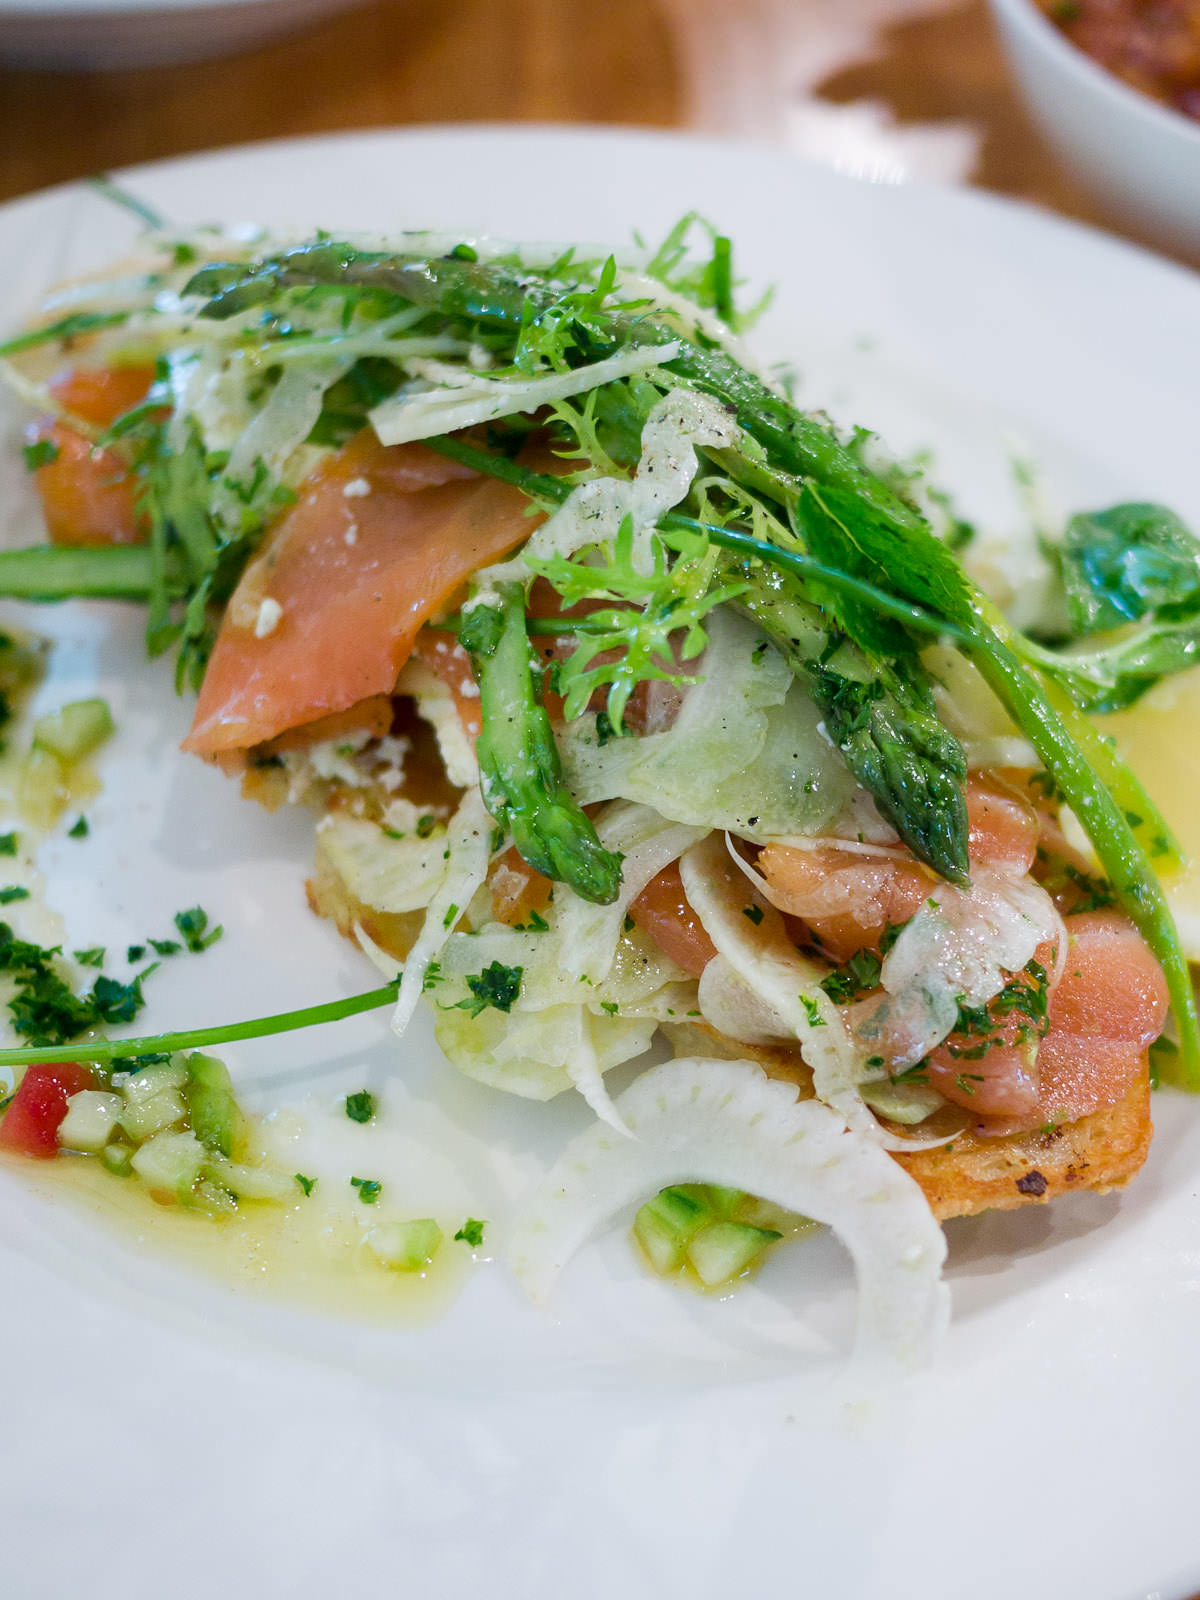 Ciabatta with Tasmanian smoked salmon, lemon ricotta, asparagus and fennel salad - close-up